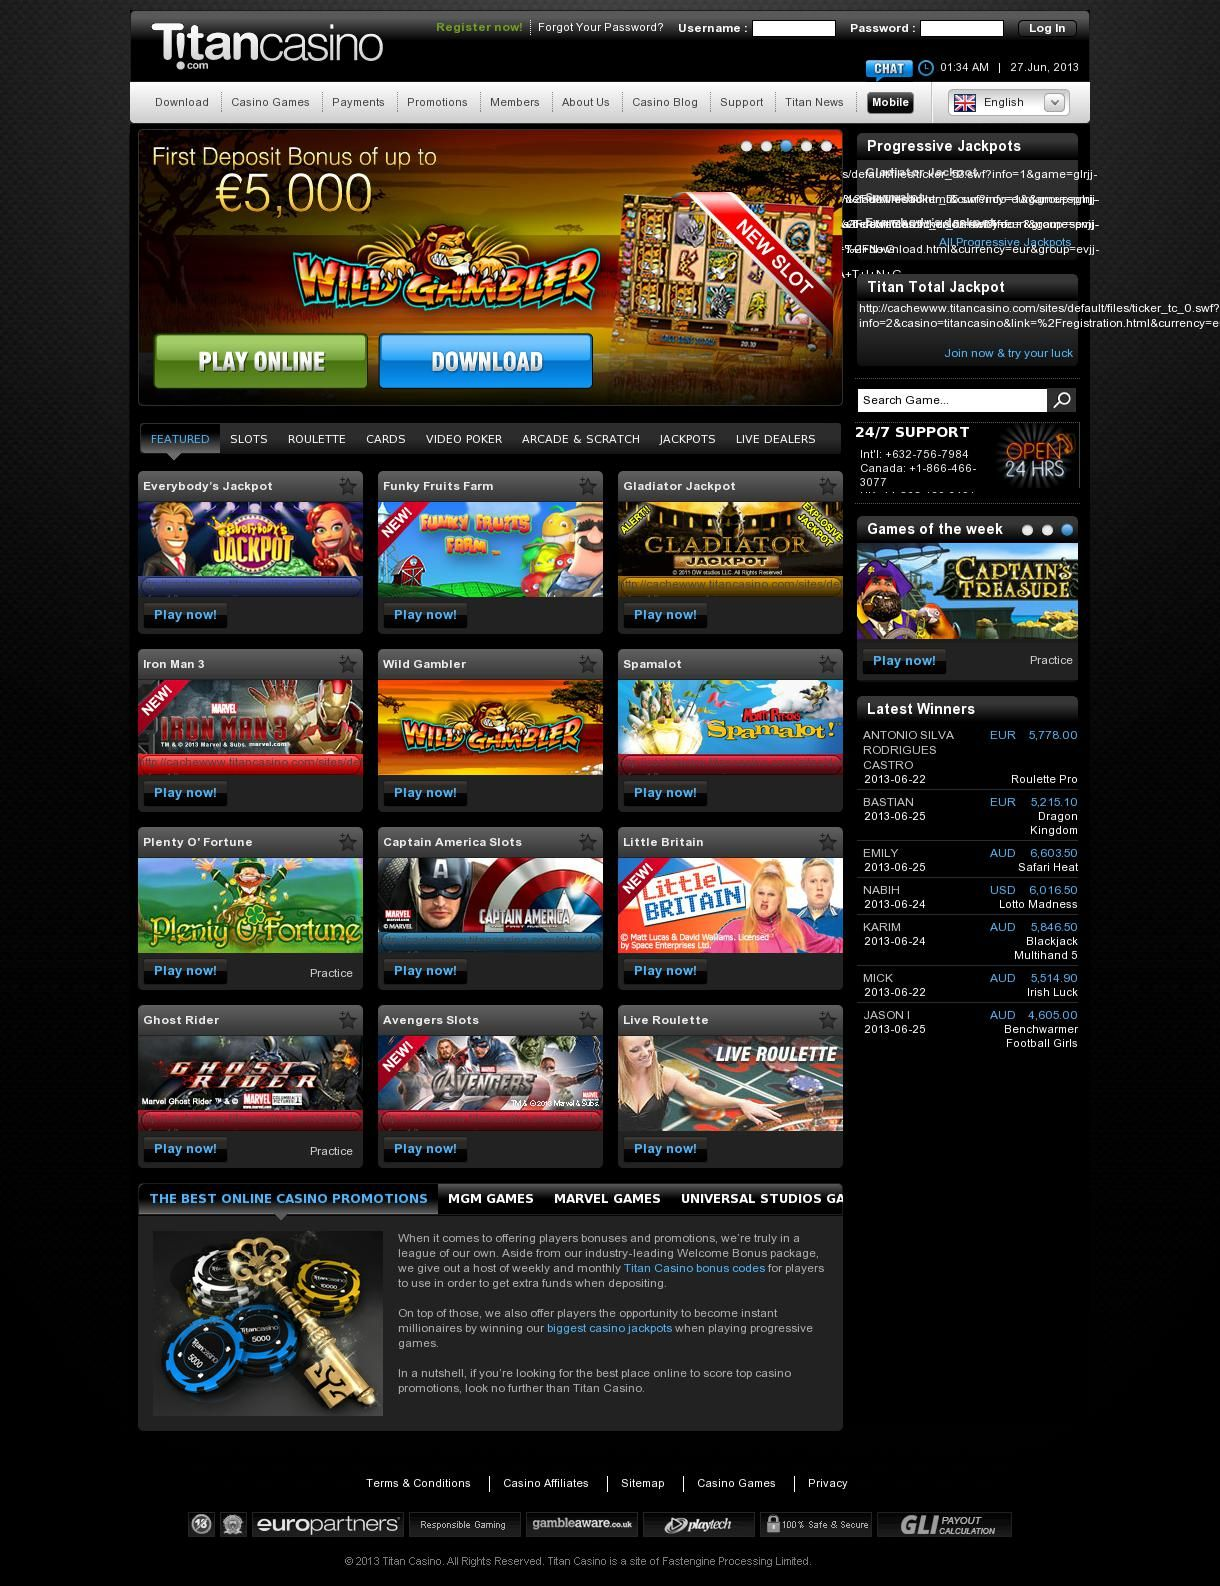 Titan Casino Games